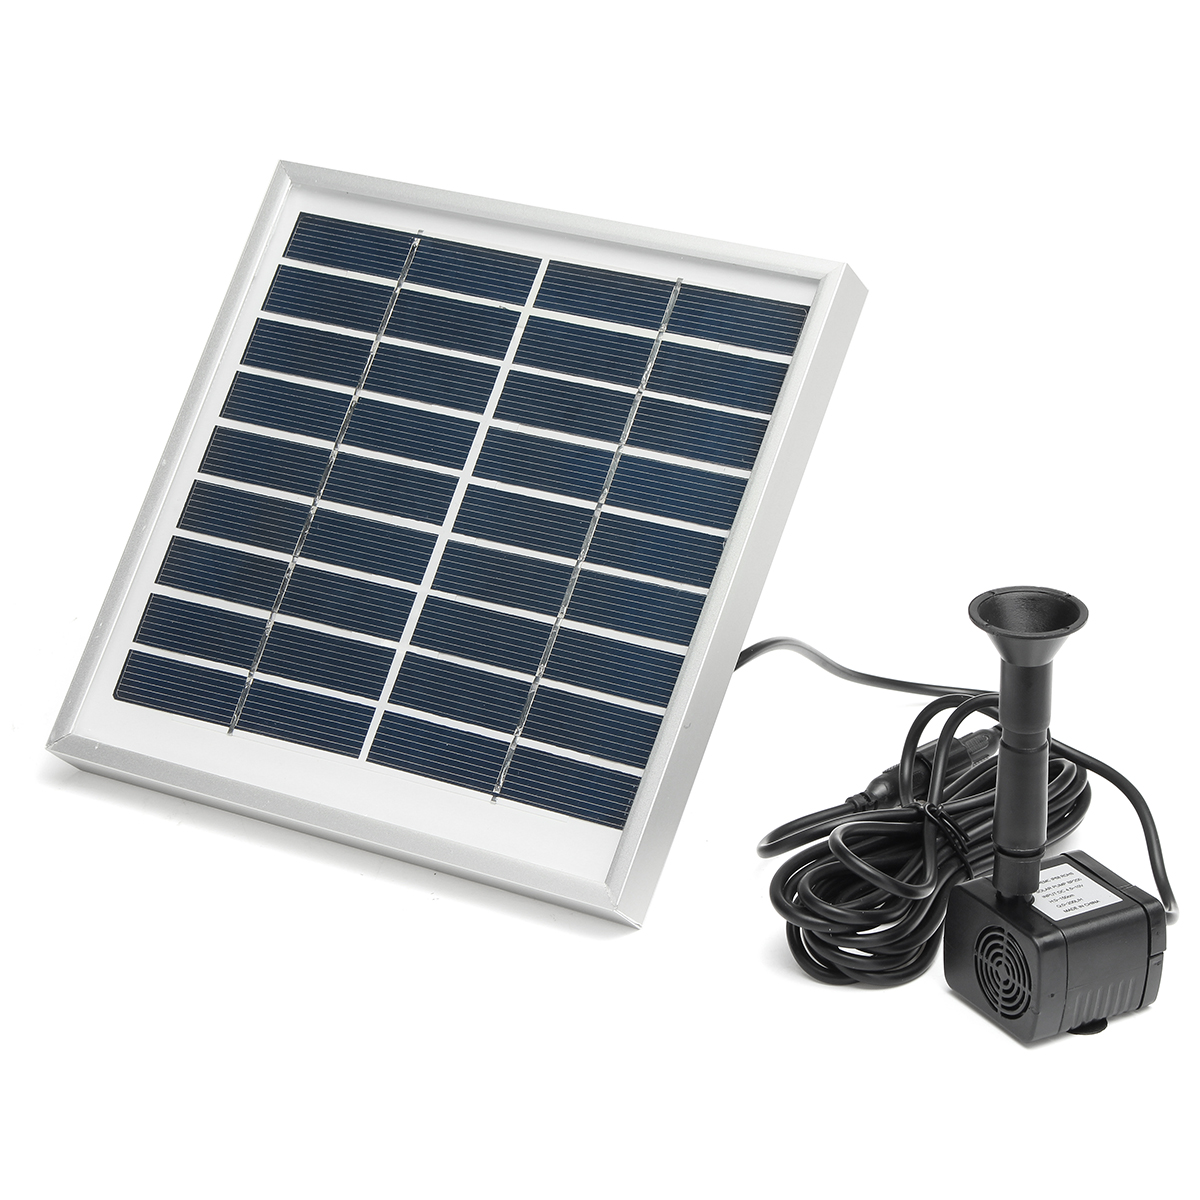 Solar Panel Fountain: 3W Solar Panel Powered Submersible Fountain Pump Water